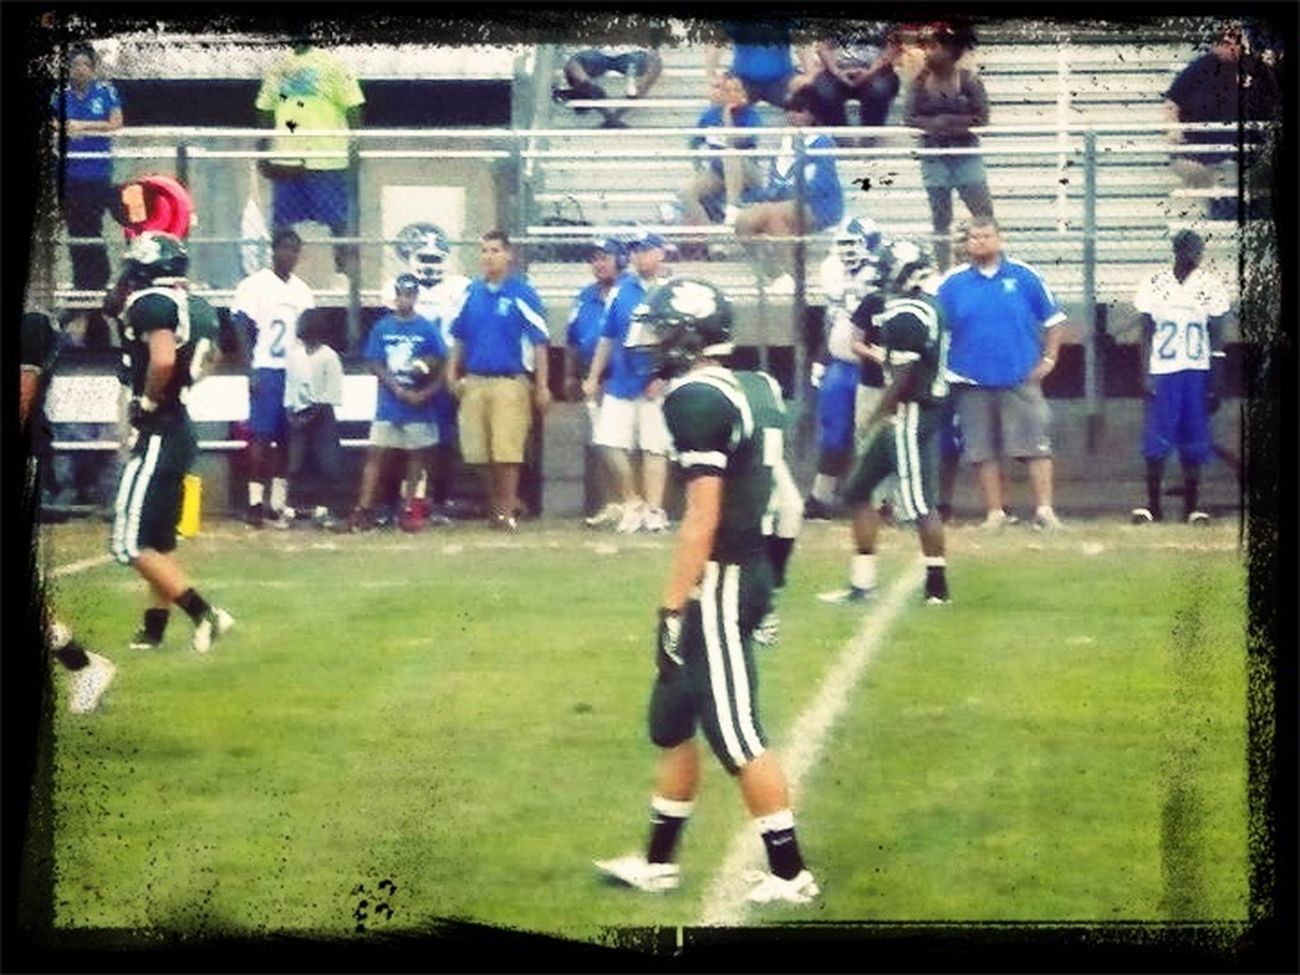 Can't wait till football man I miss it